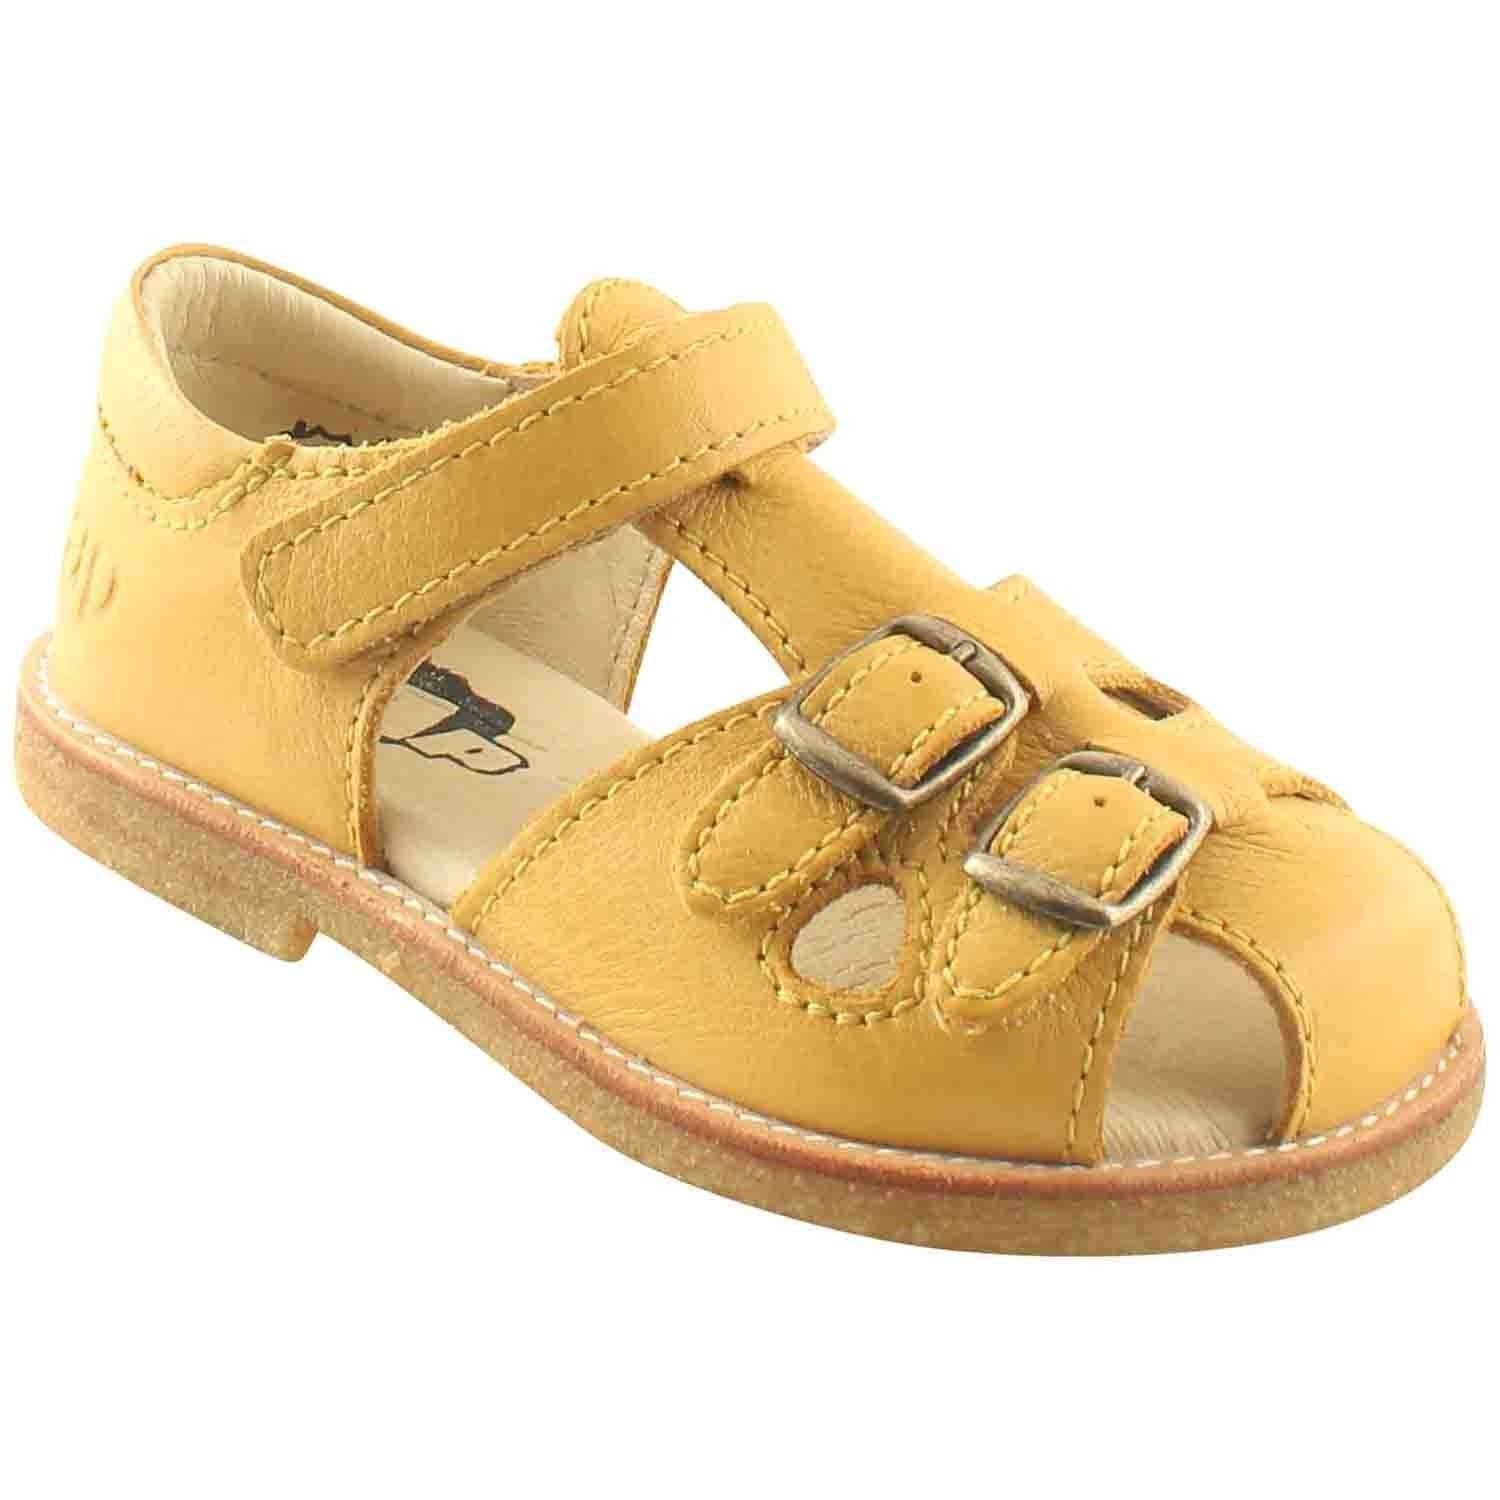 Image of   Arauto RAP sandal m/lukket tå - Yellow